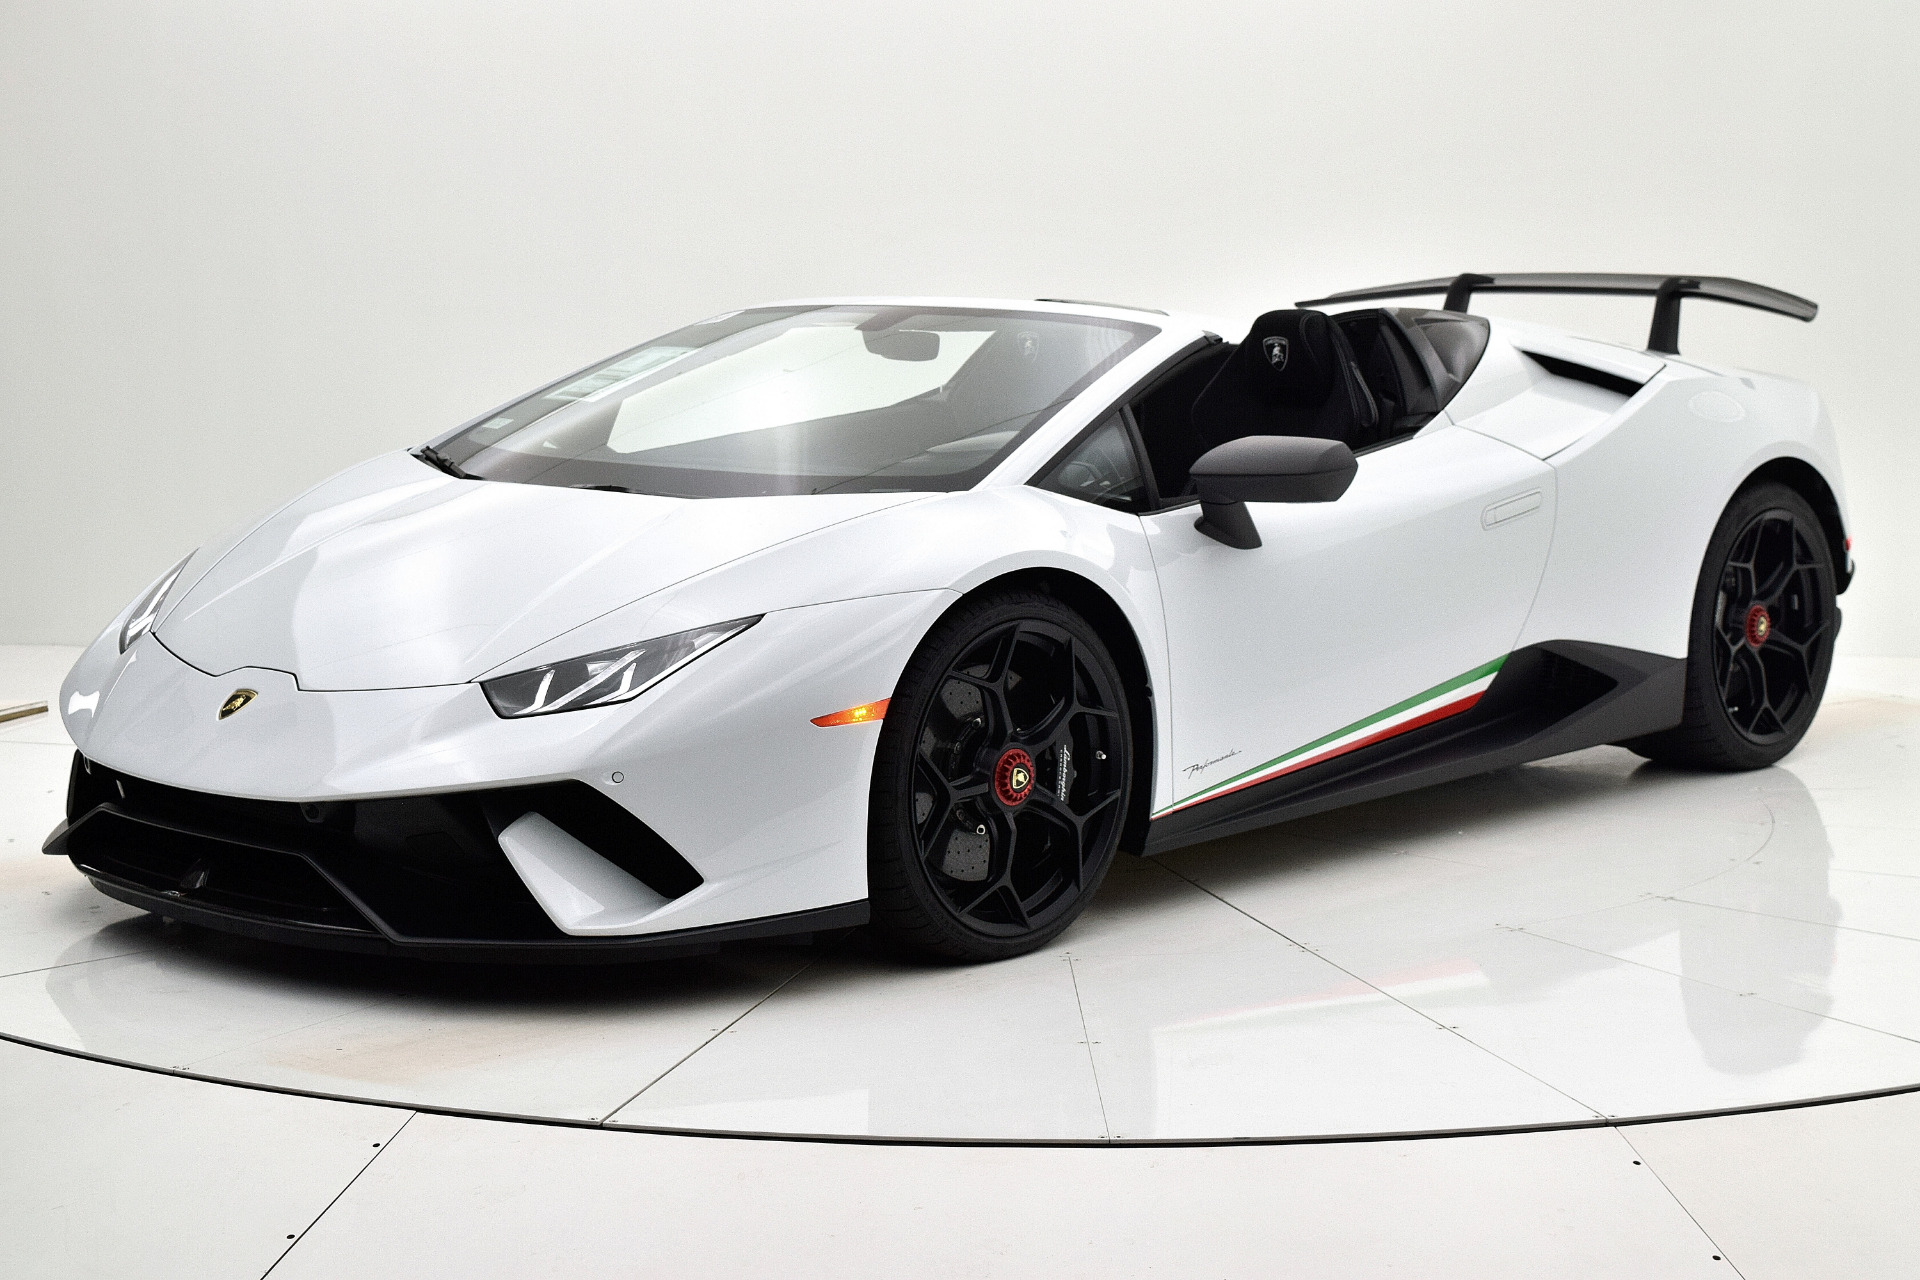 New 2019 Lamborghini Huracan Lp640 4 Performante Spyder For